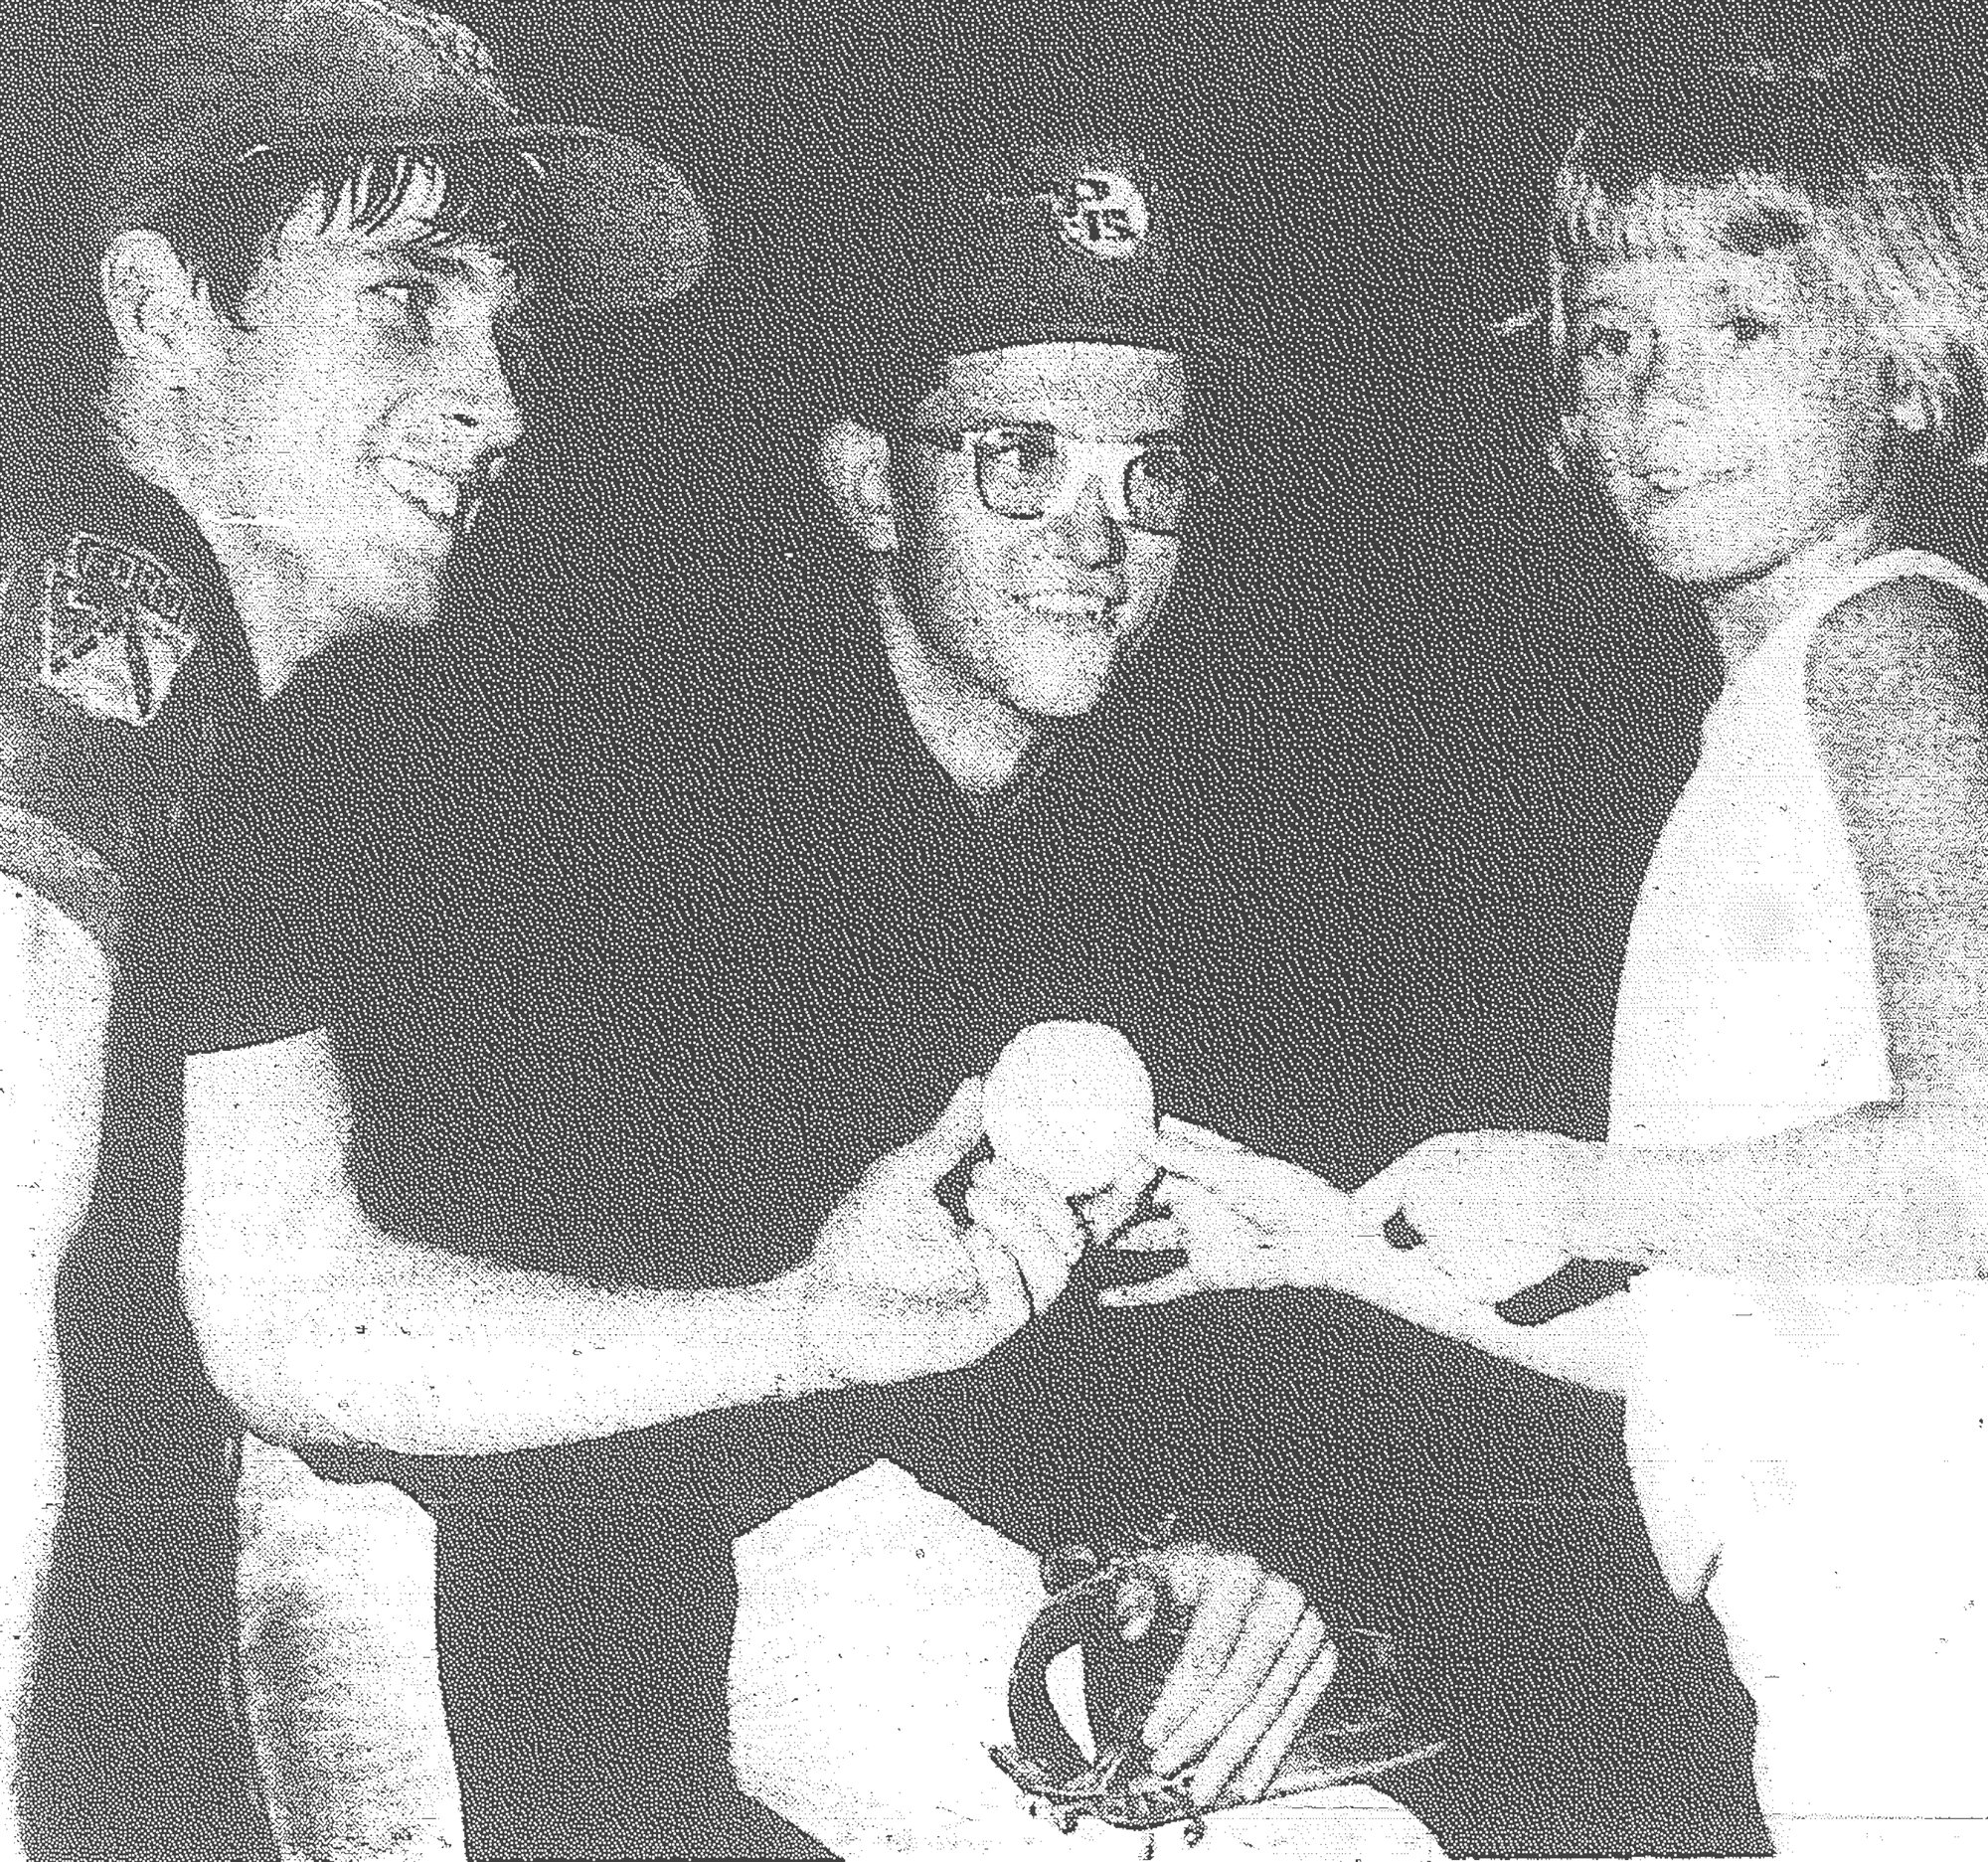 1969 - Em Brown, who has been a loyal fan of the Sumter P-15's the entire season, asked for and got autographs of the team at the final game of the 1969 season in Manning on July 12. She's seen with the two leading stars in the 7-2 victory by Sumter, Donnie Branham, left, and Ricky Barkley. Barkley hurled the win, a four-hitter, while Branham had three hits.